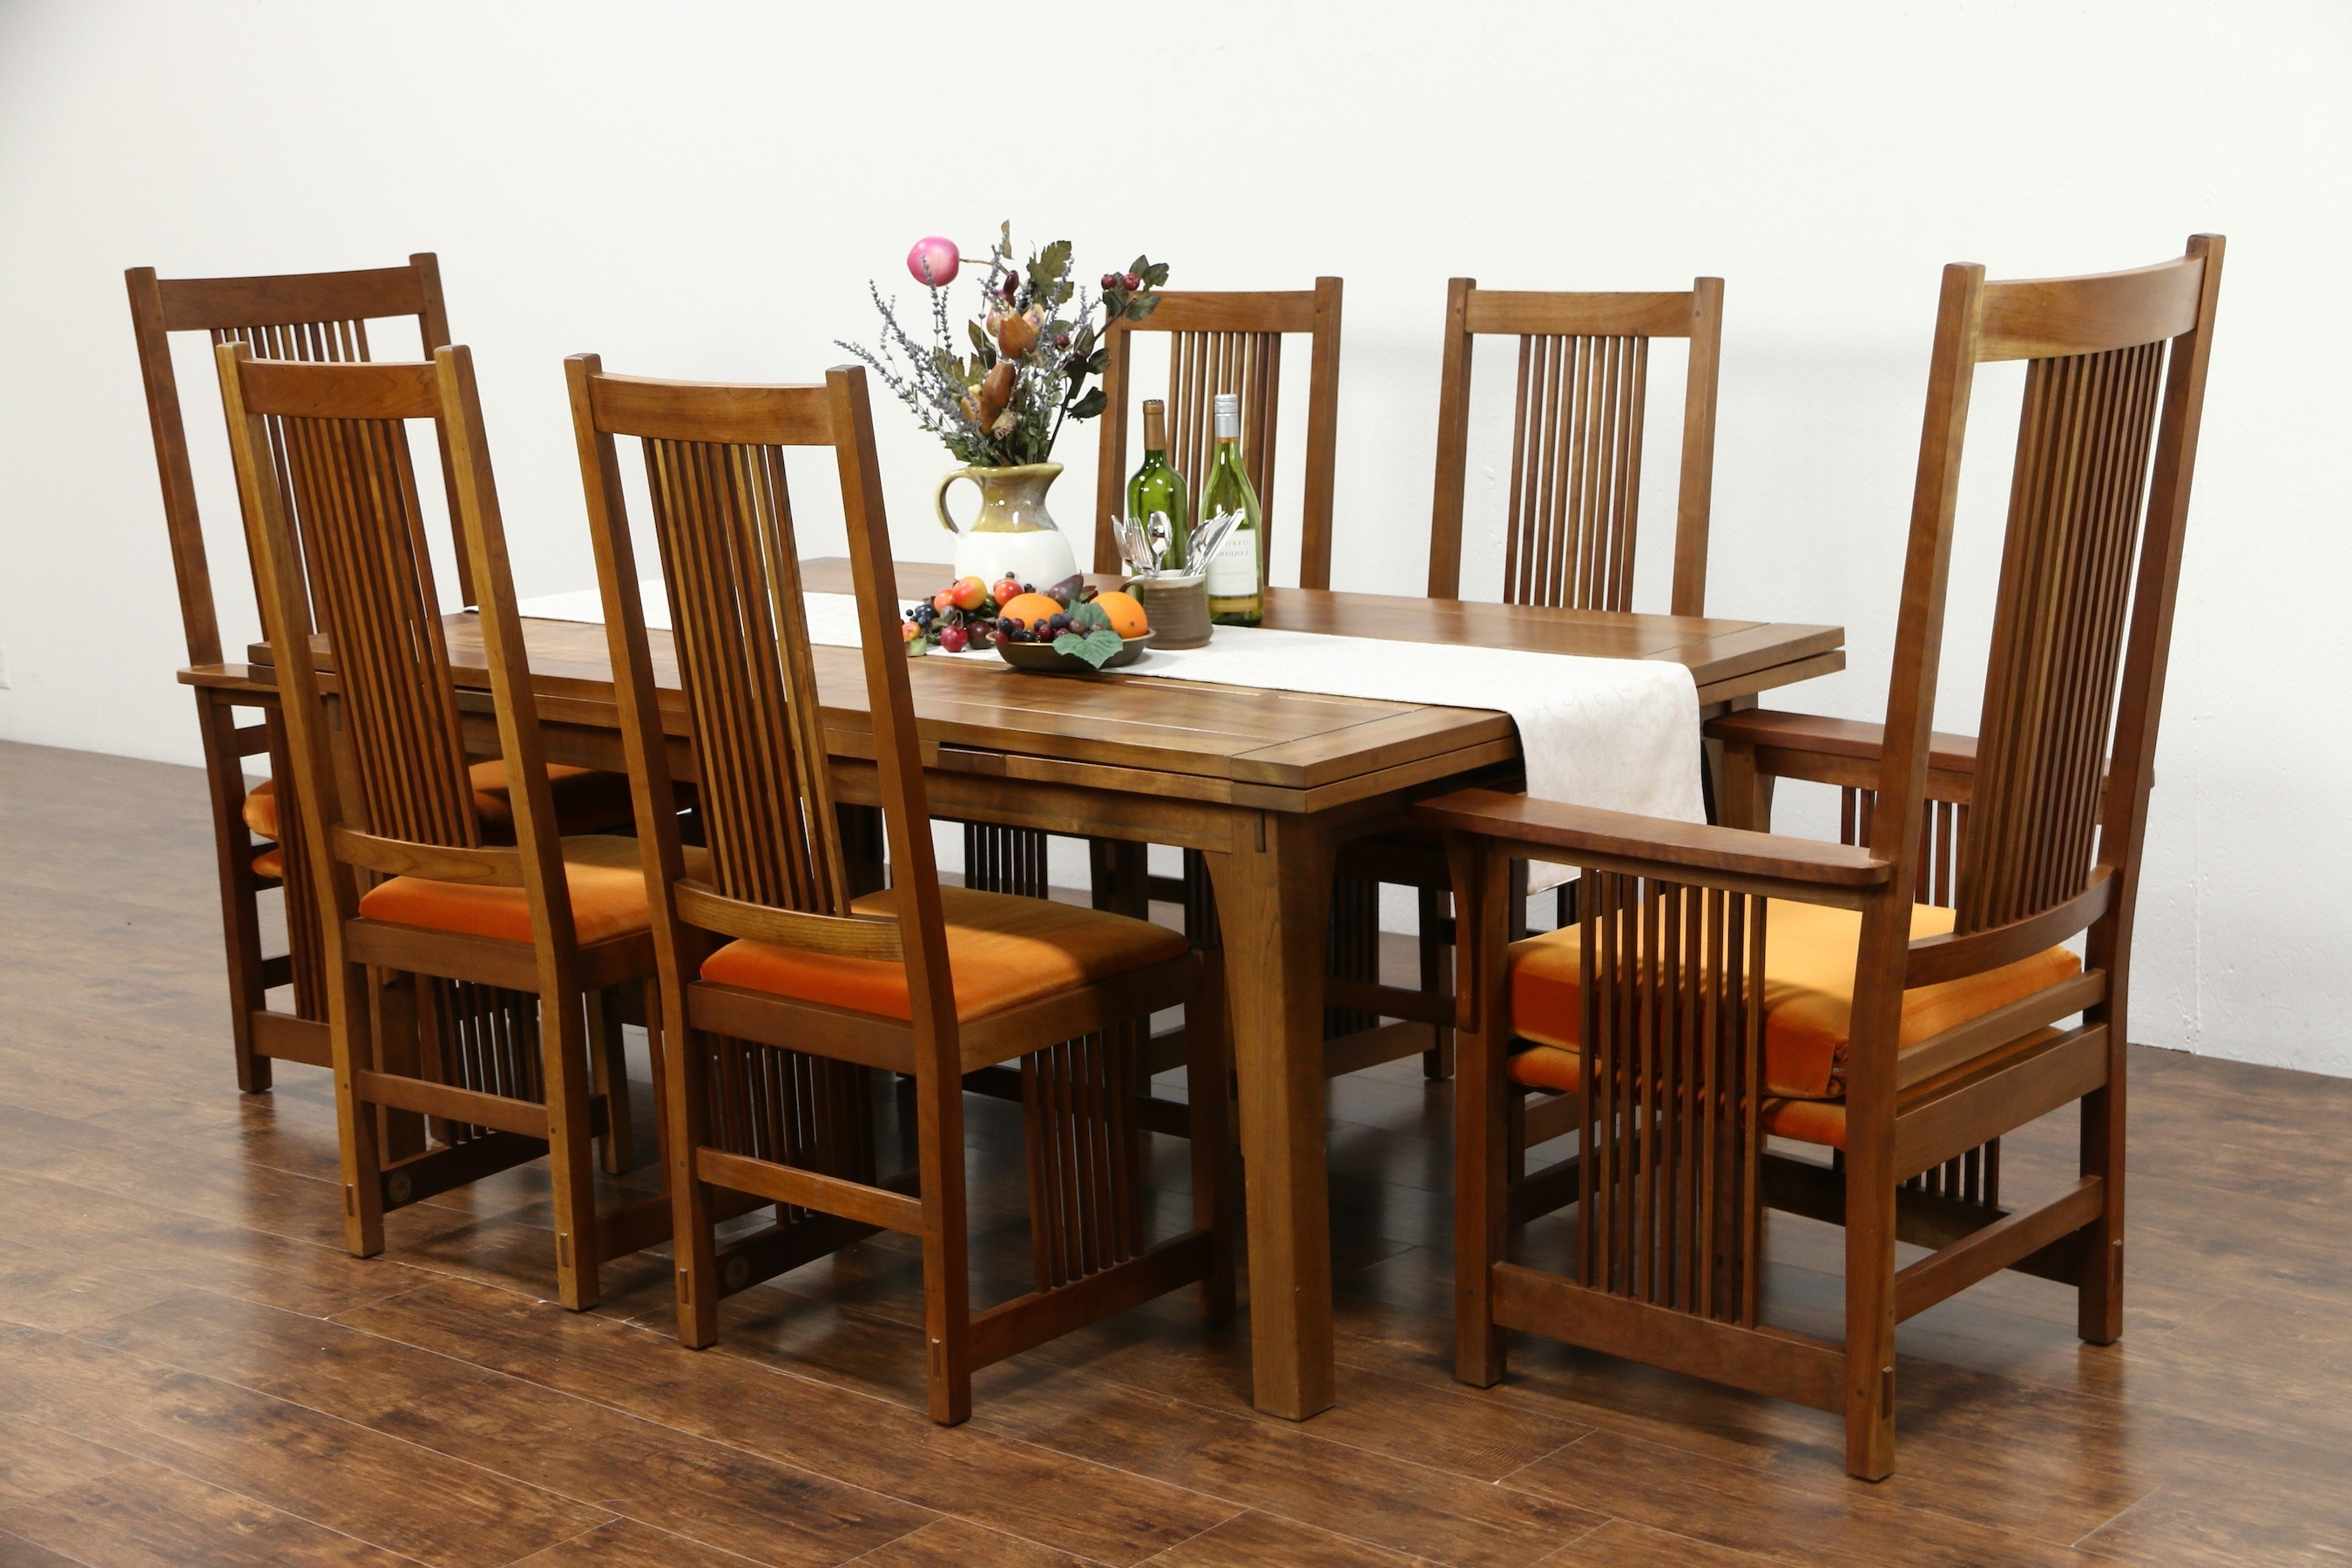 Sold – Stickley Signed Cherry Craftsman Design 1995 Dining Set With Regard To Most Popular Craftsman Upholstered Side Chairs (View 19 of 20)